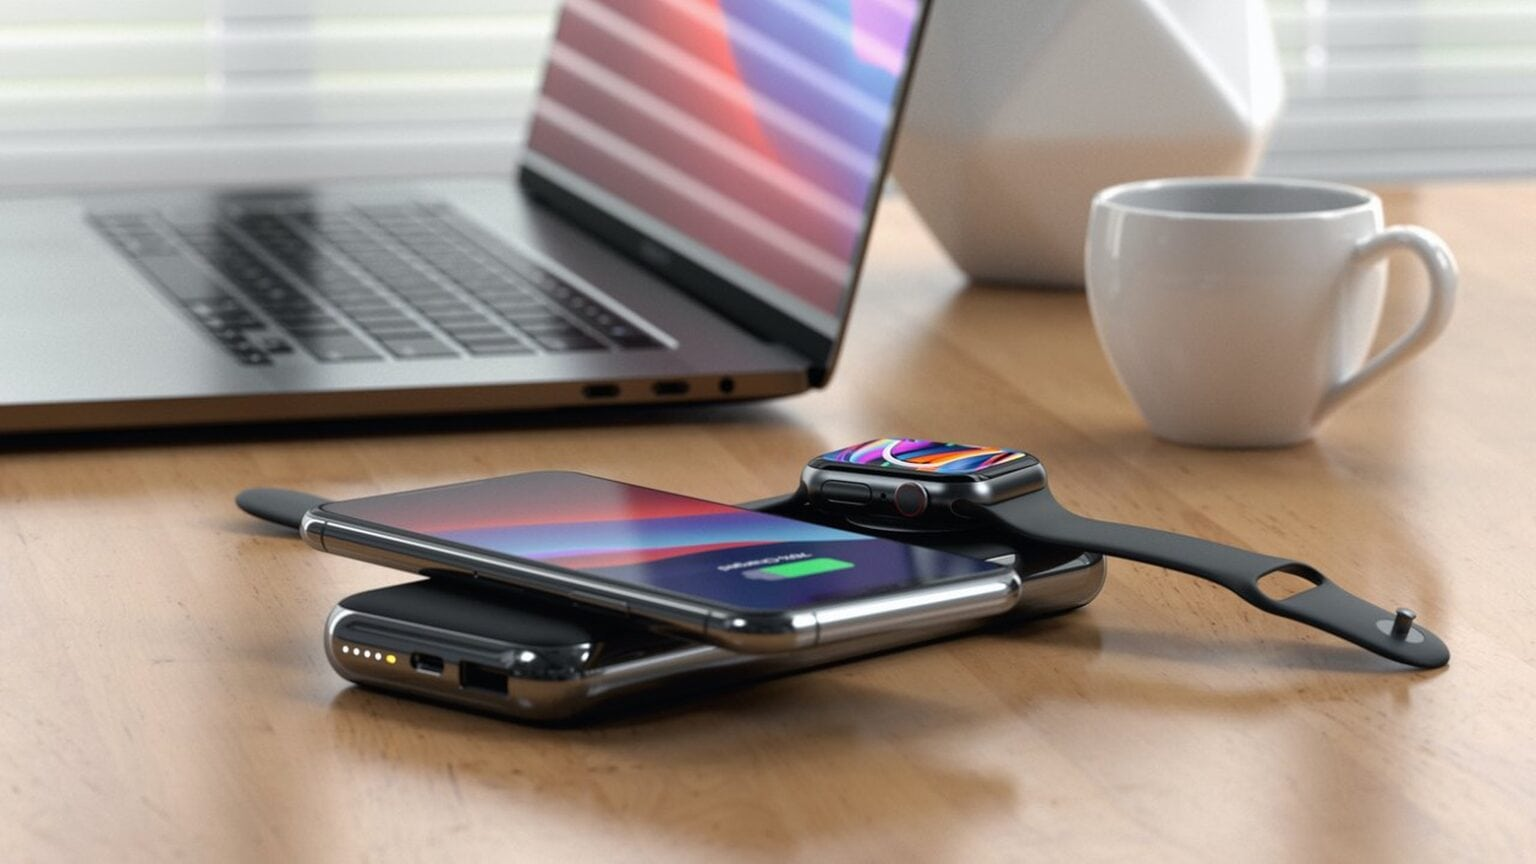 The Satechi Quatro Wireless Power Bank includes four charging methods.